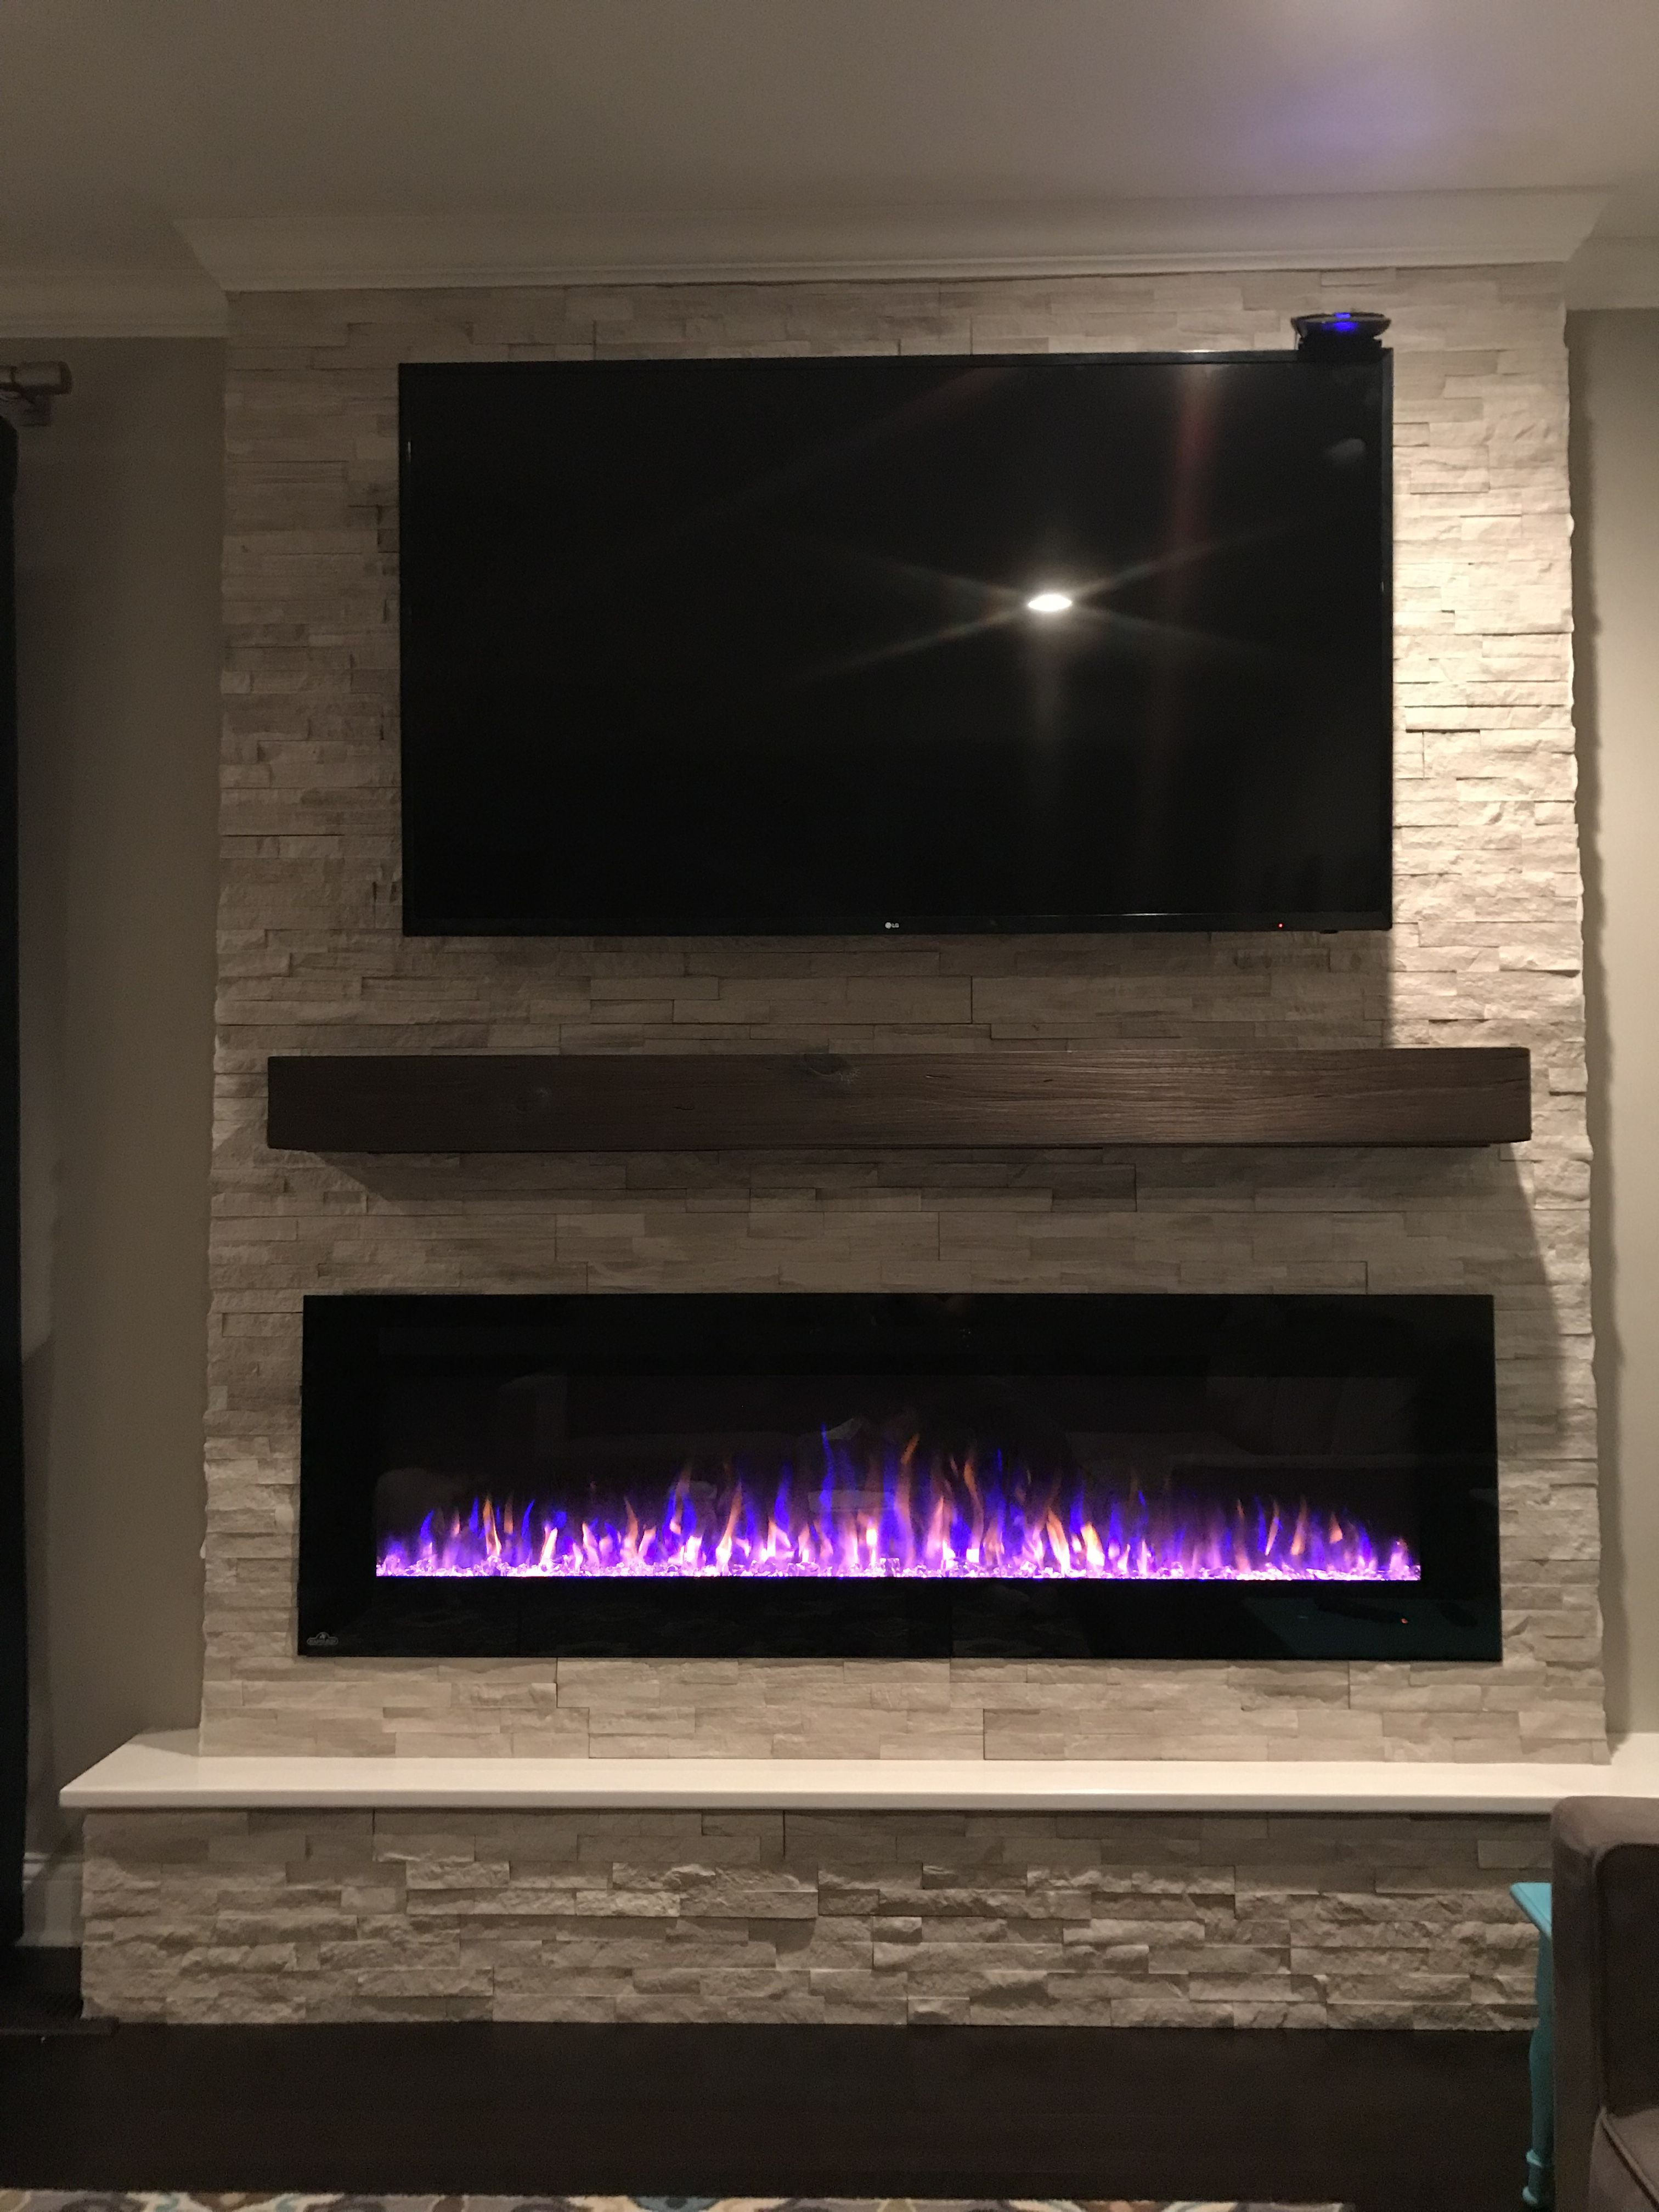 our new electric fireplace living room ideas in 2019 electric fireplace in master bedroom electric fireplace in master bedroom